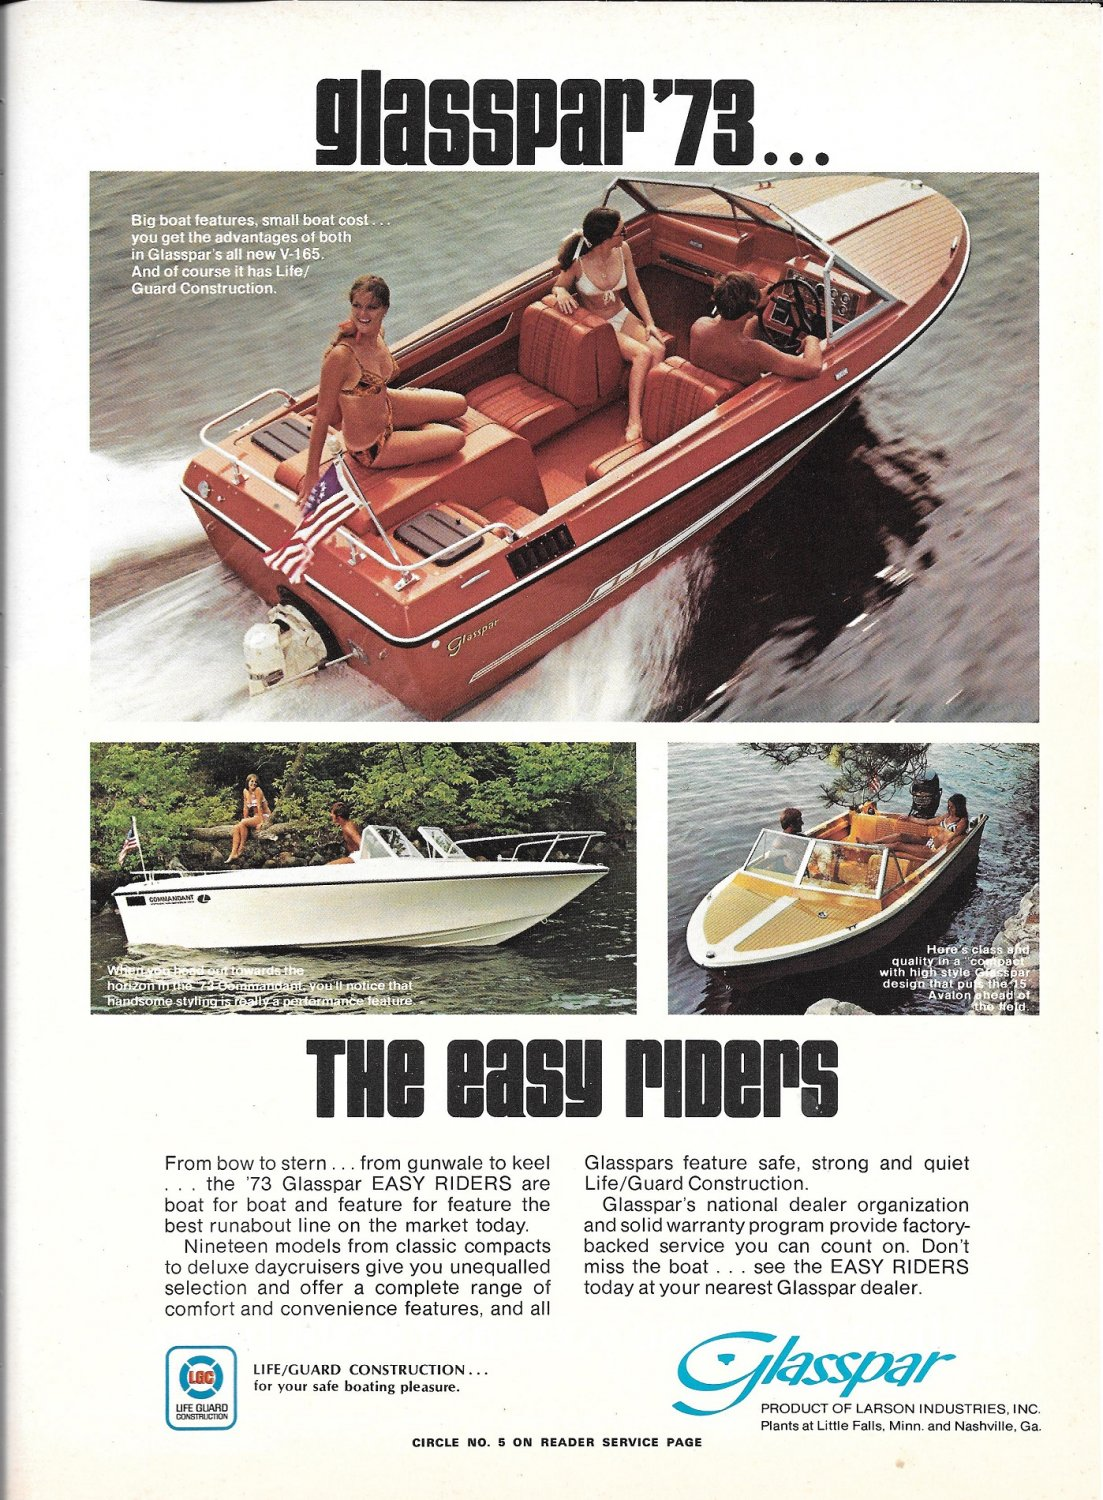 1973 Glasspar Boats & Uniflite 36 3 Page Double Boat Ads- Nice Photos- Hot Girls